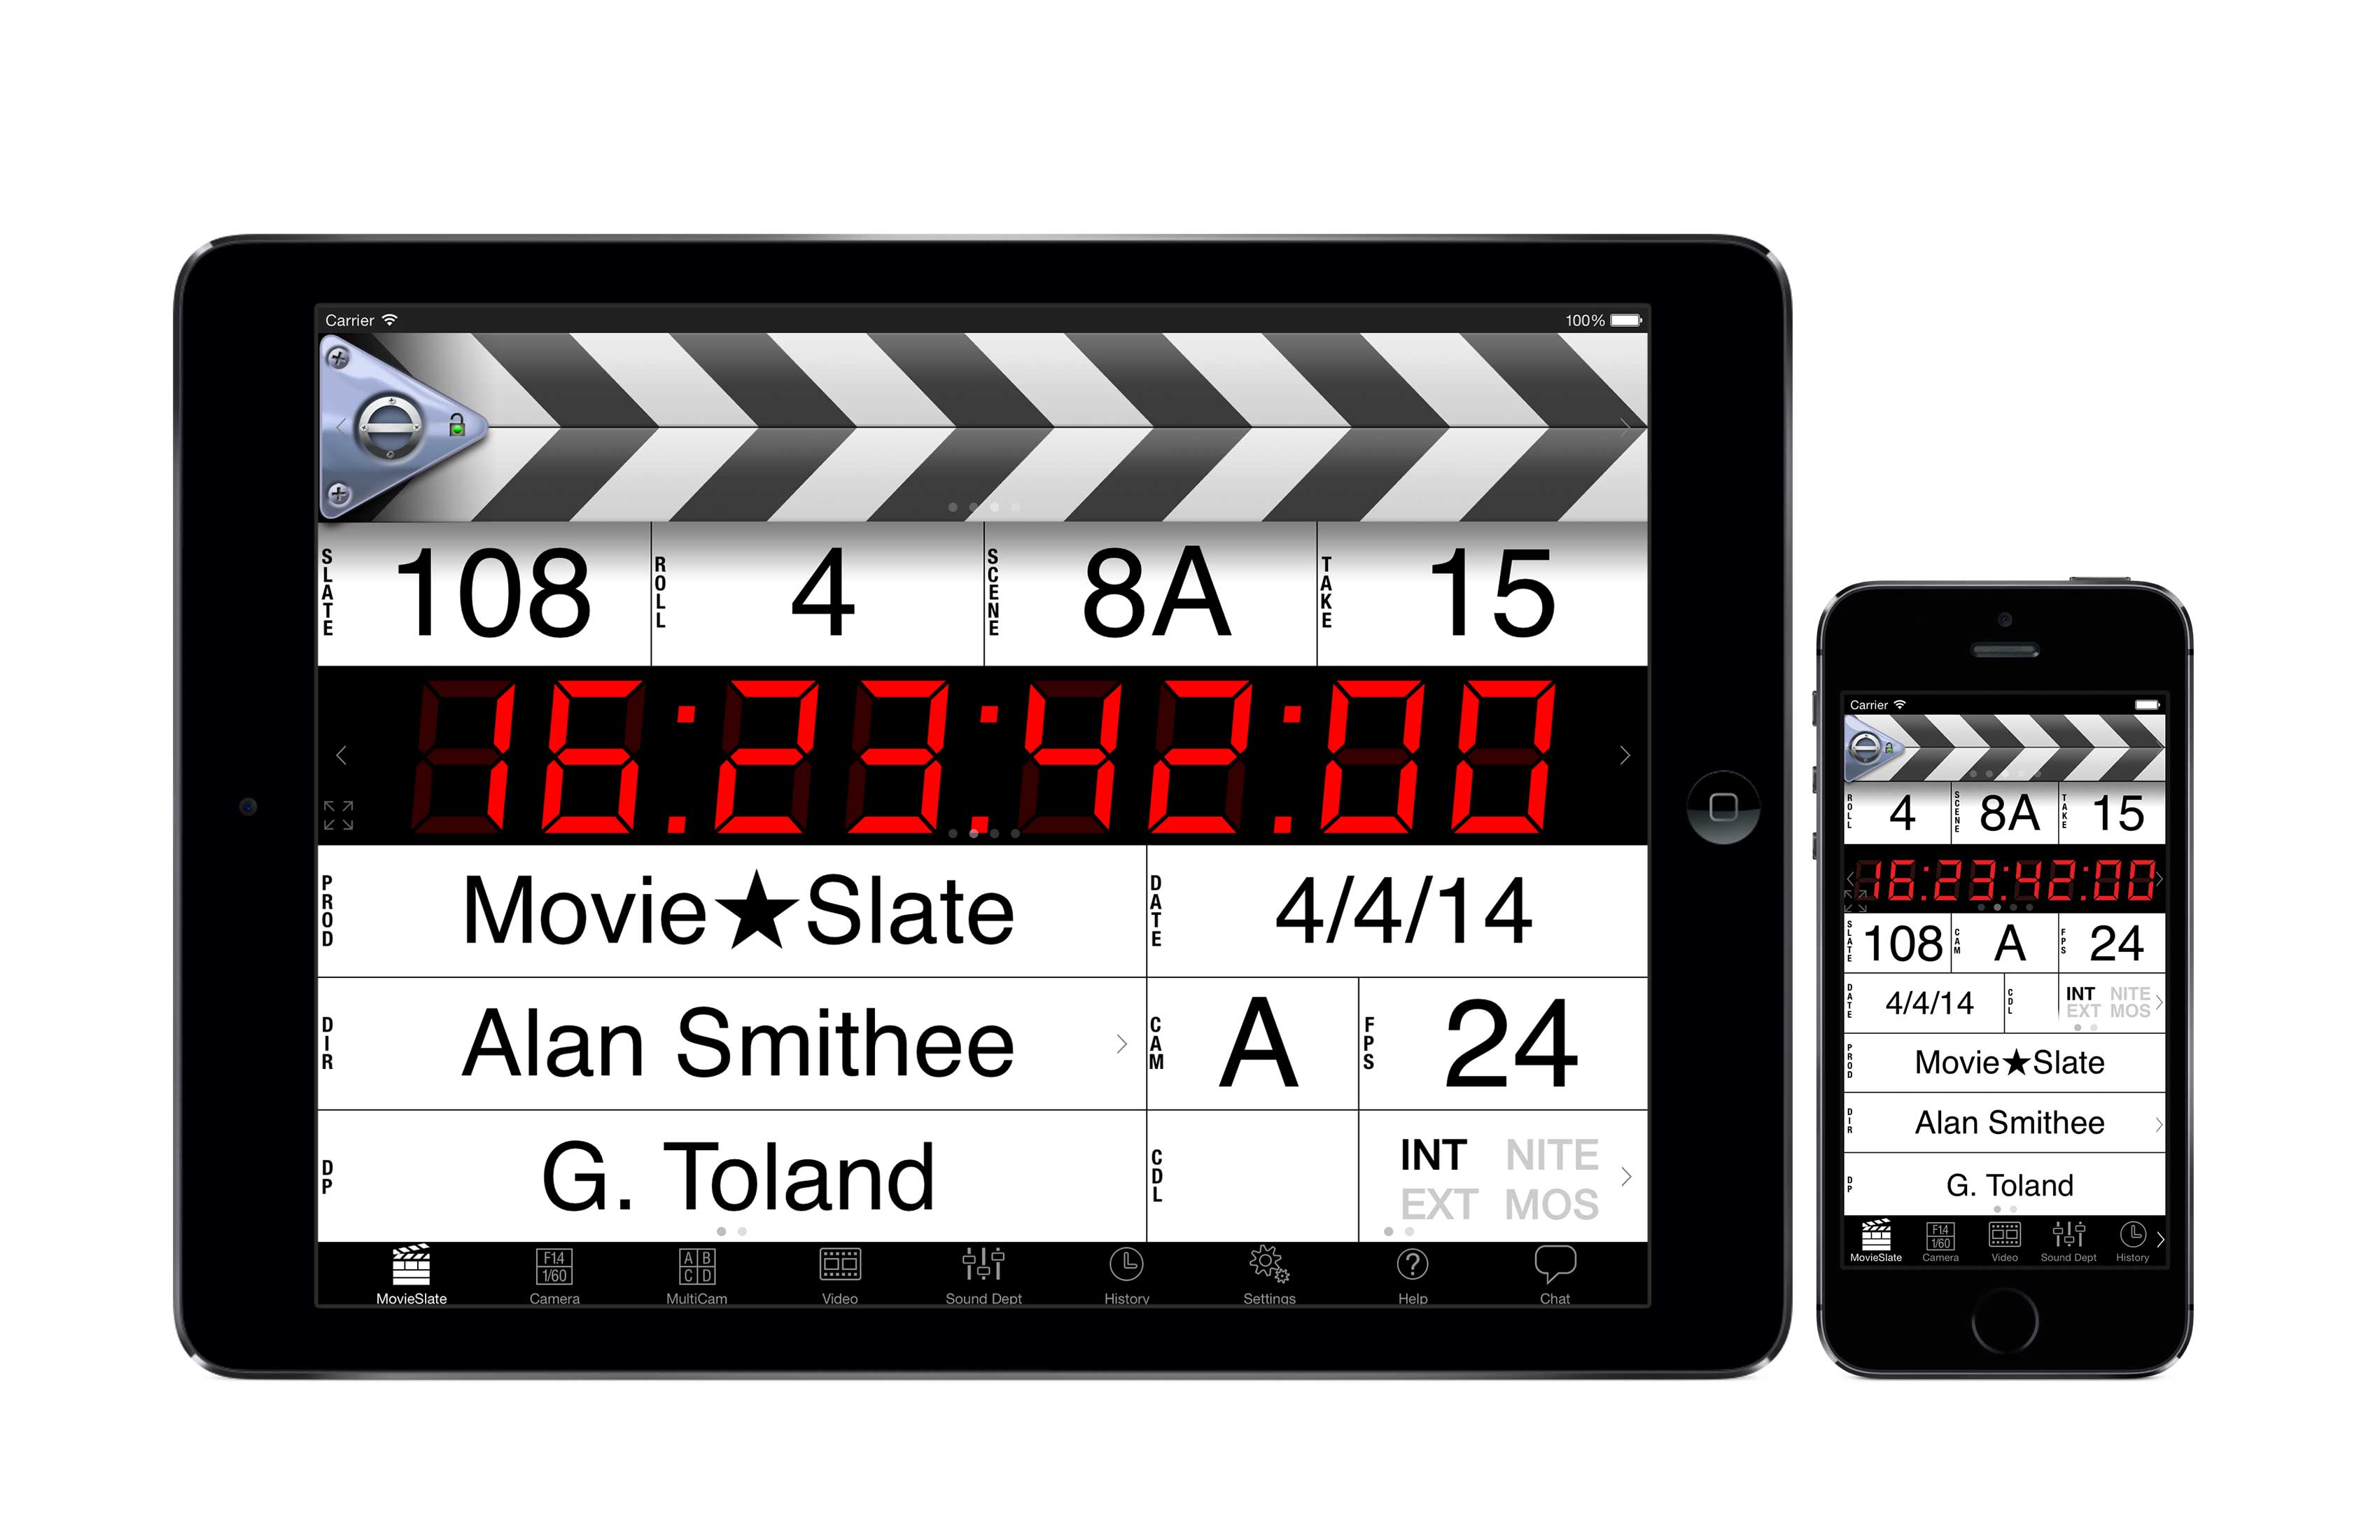 Promotional Image: MovieSlate on iPad and iPhone